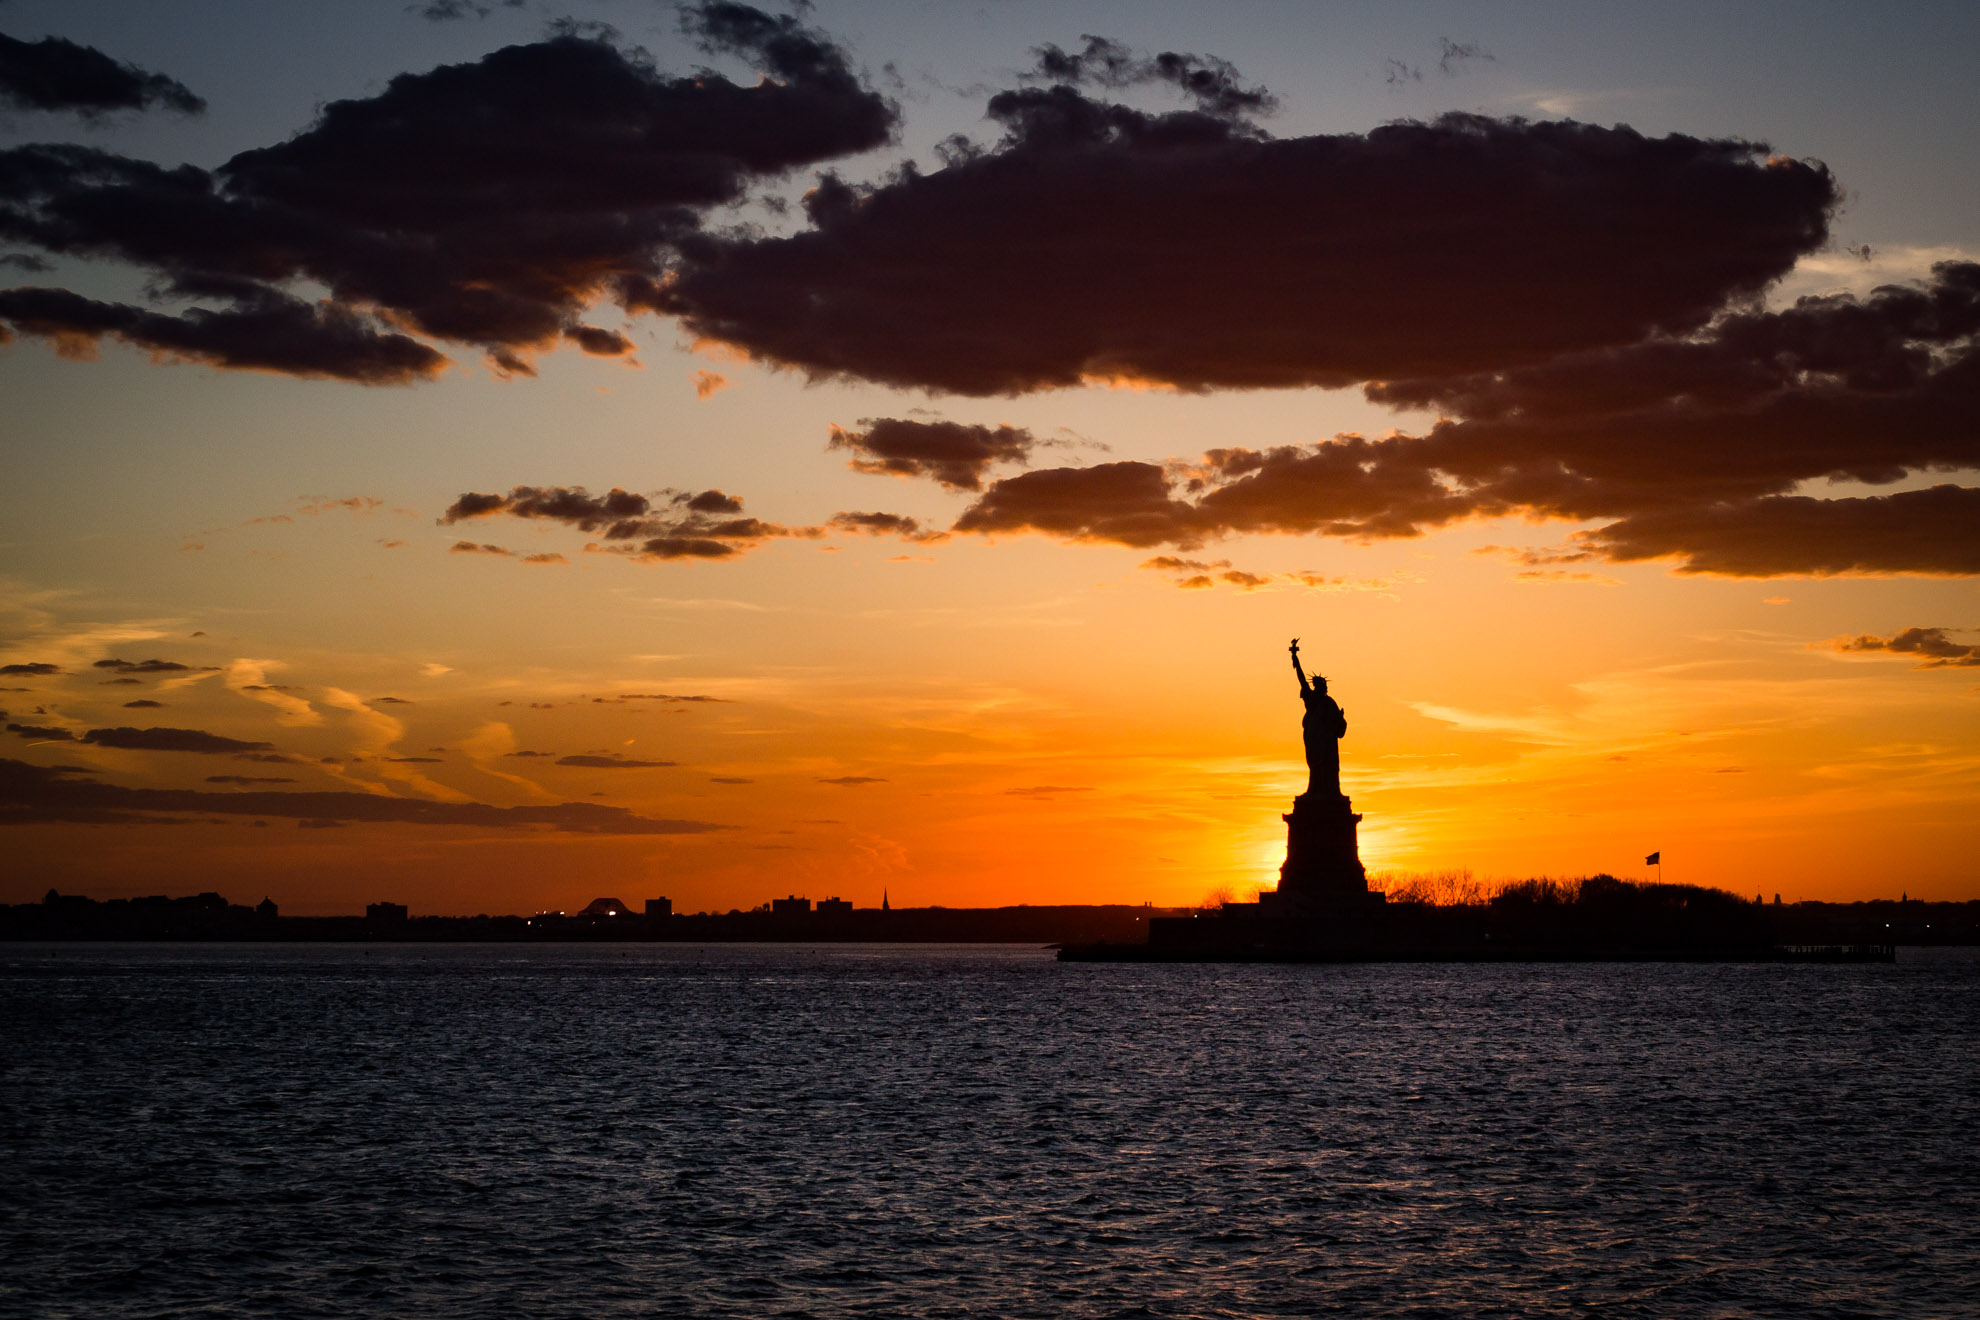 Sunset behind the statue of liberty